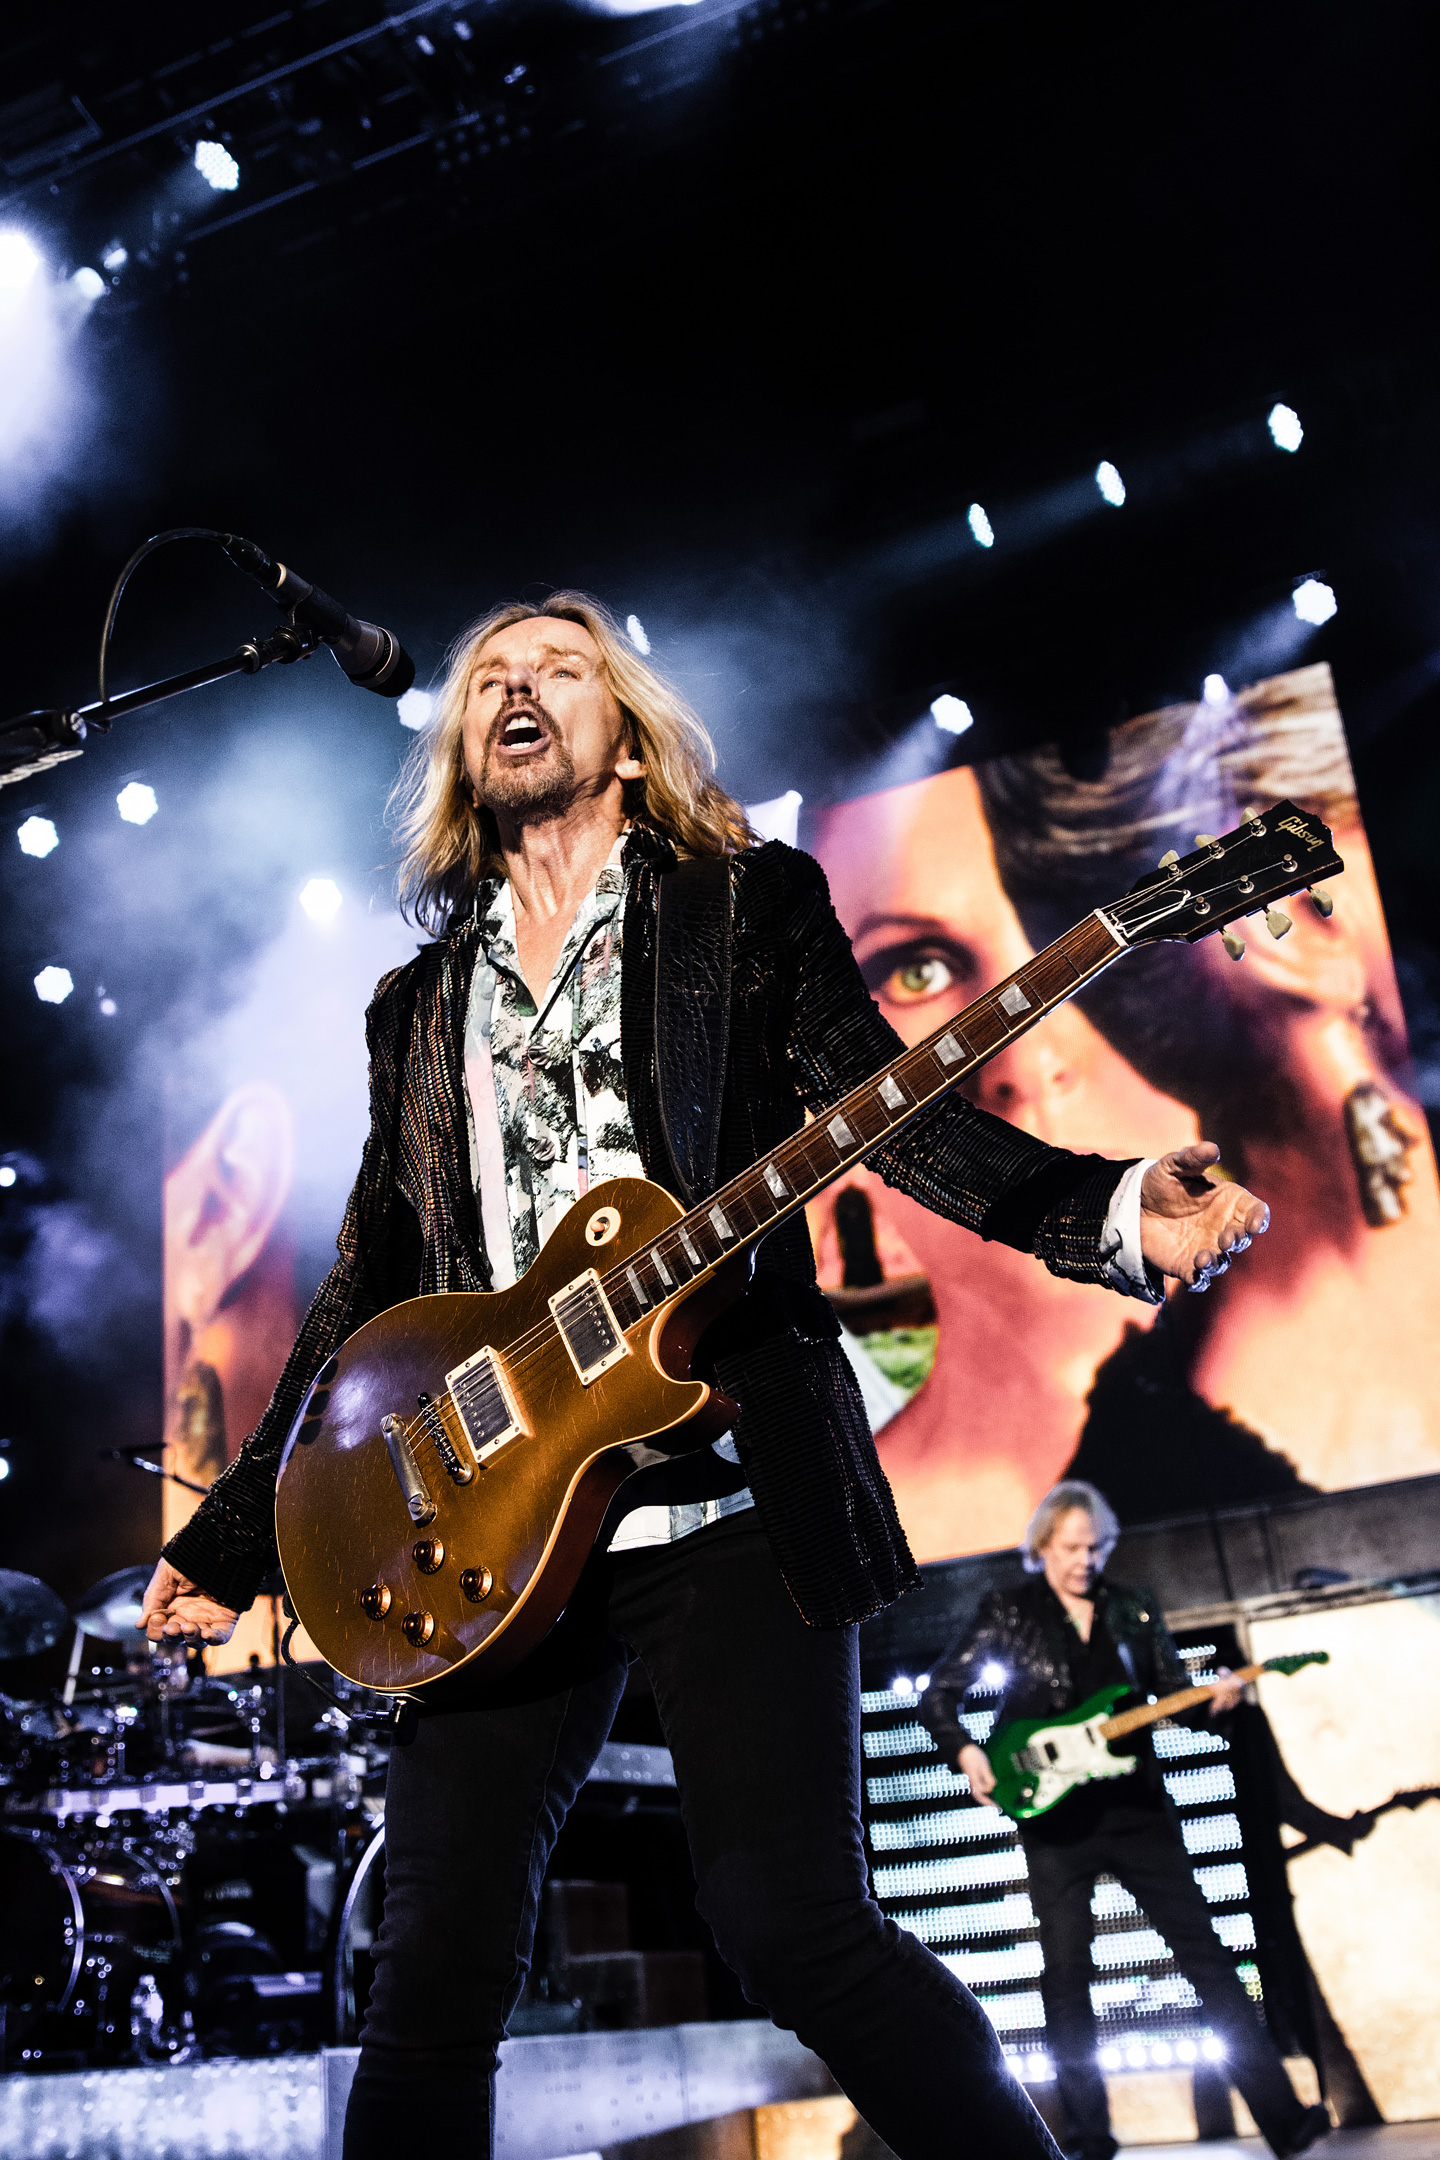 Styx Concert Photos 2018 - Fiddler's Green Denver